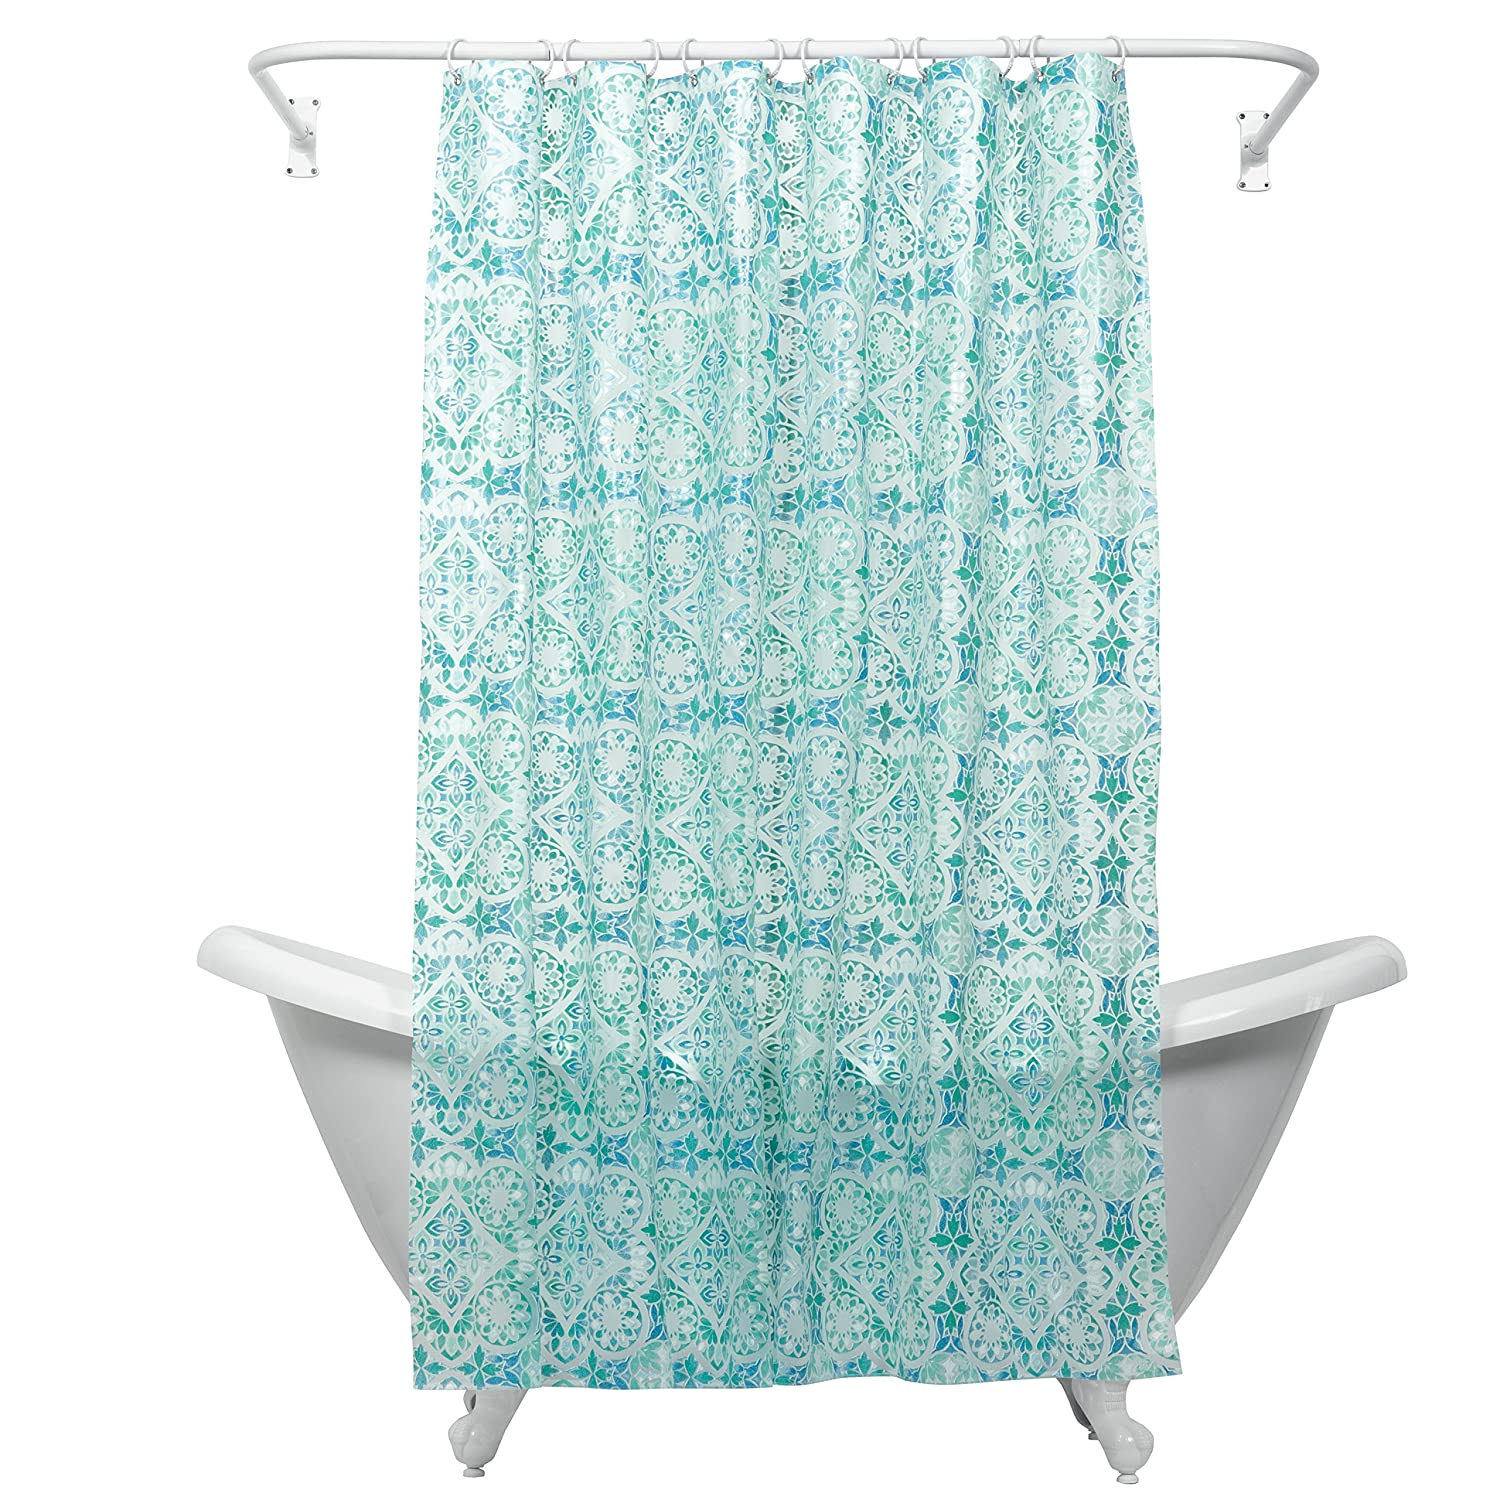 Zenna Home, India Ink Morocco Peva Shower Curtain Liner, Teal Zenith Products Corporation 146194023Z